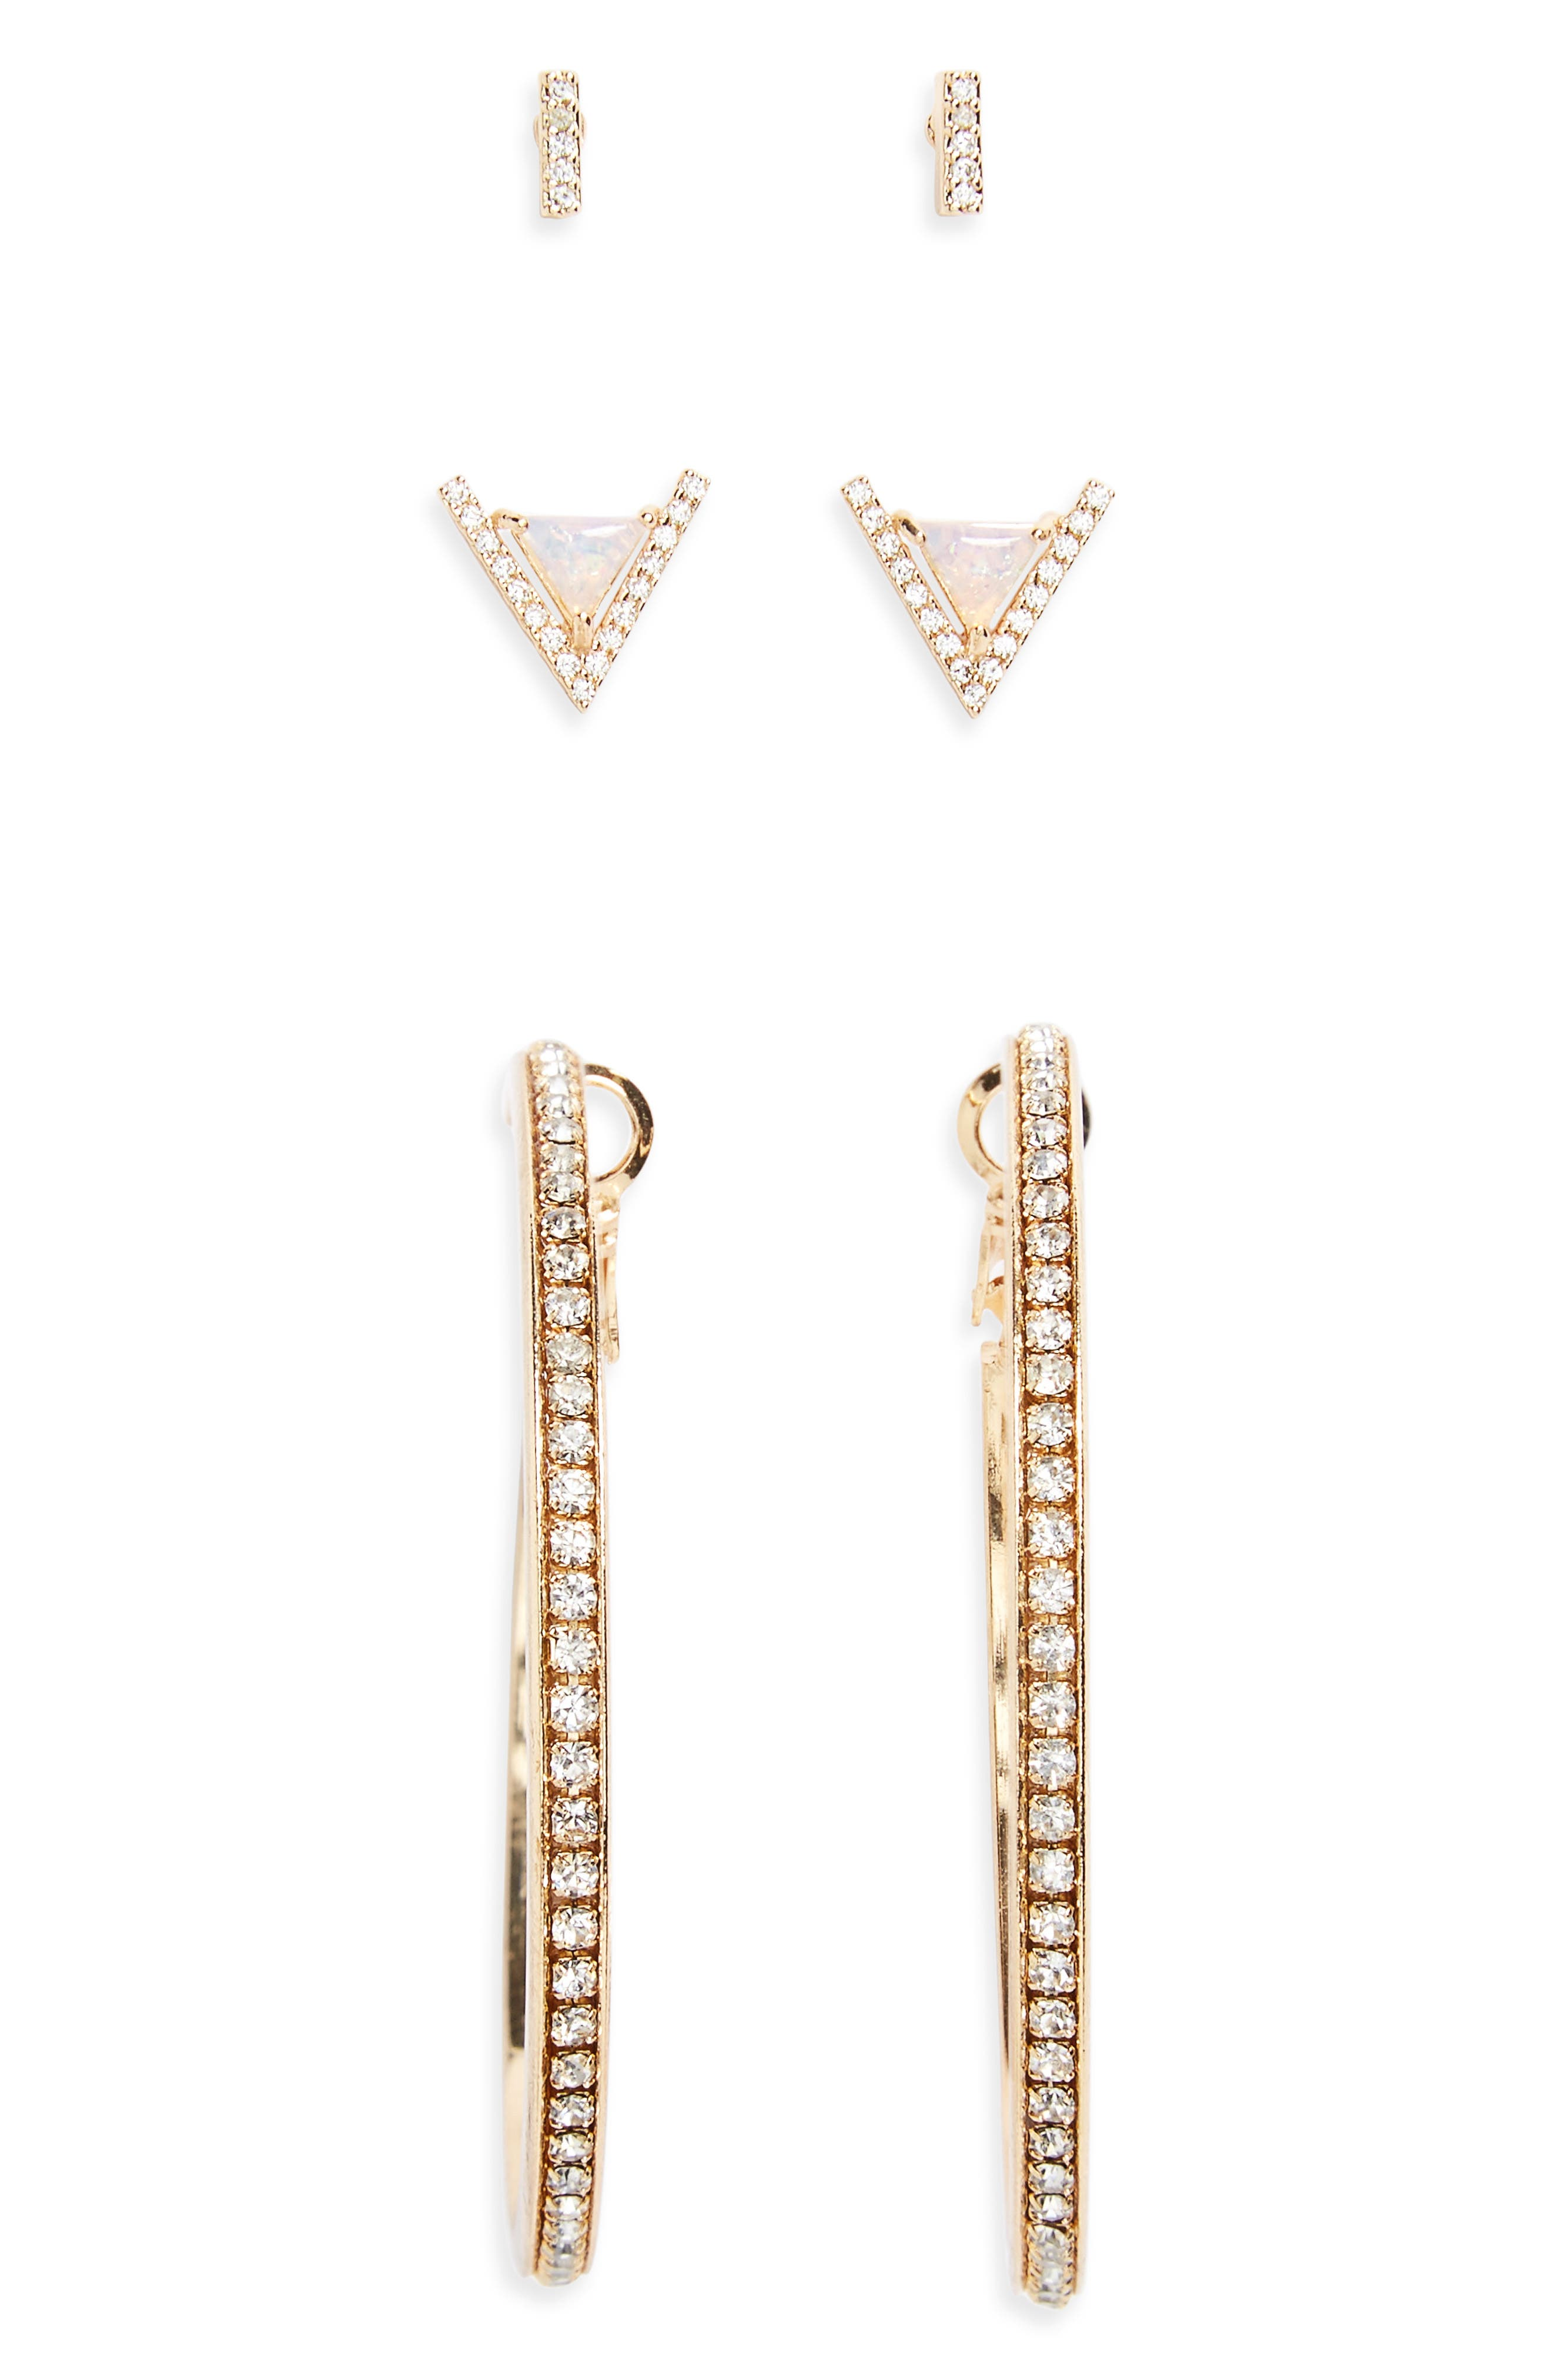 Crystal & Faux Opal 3-Pack Earrings,                             Main thumbnail 1, color,                             Gold